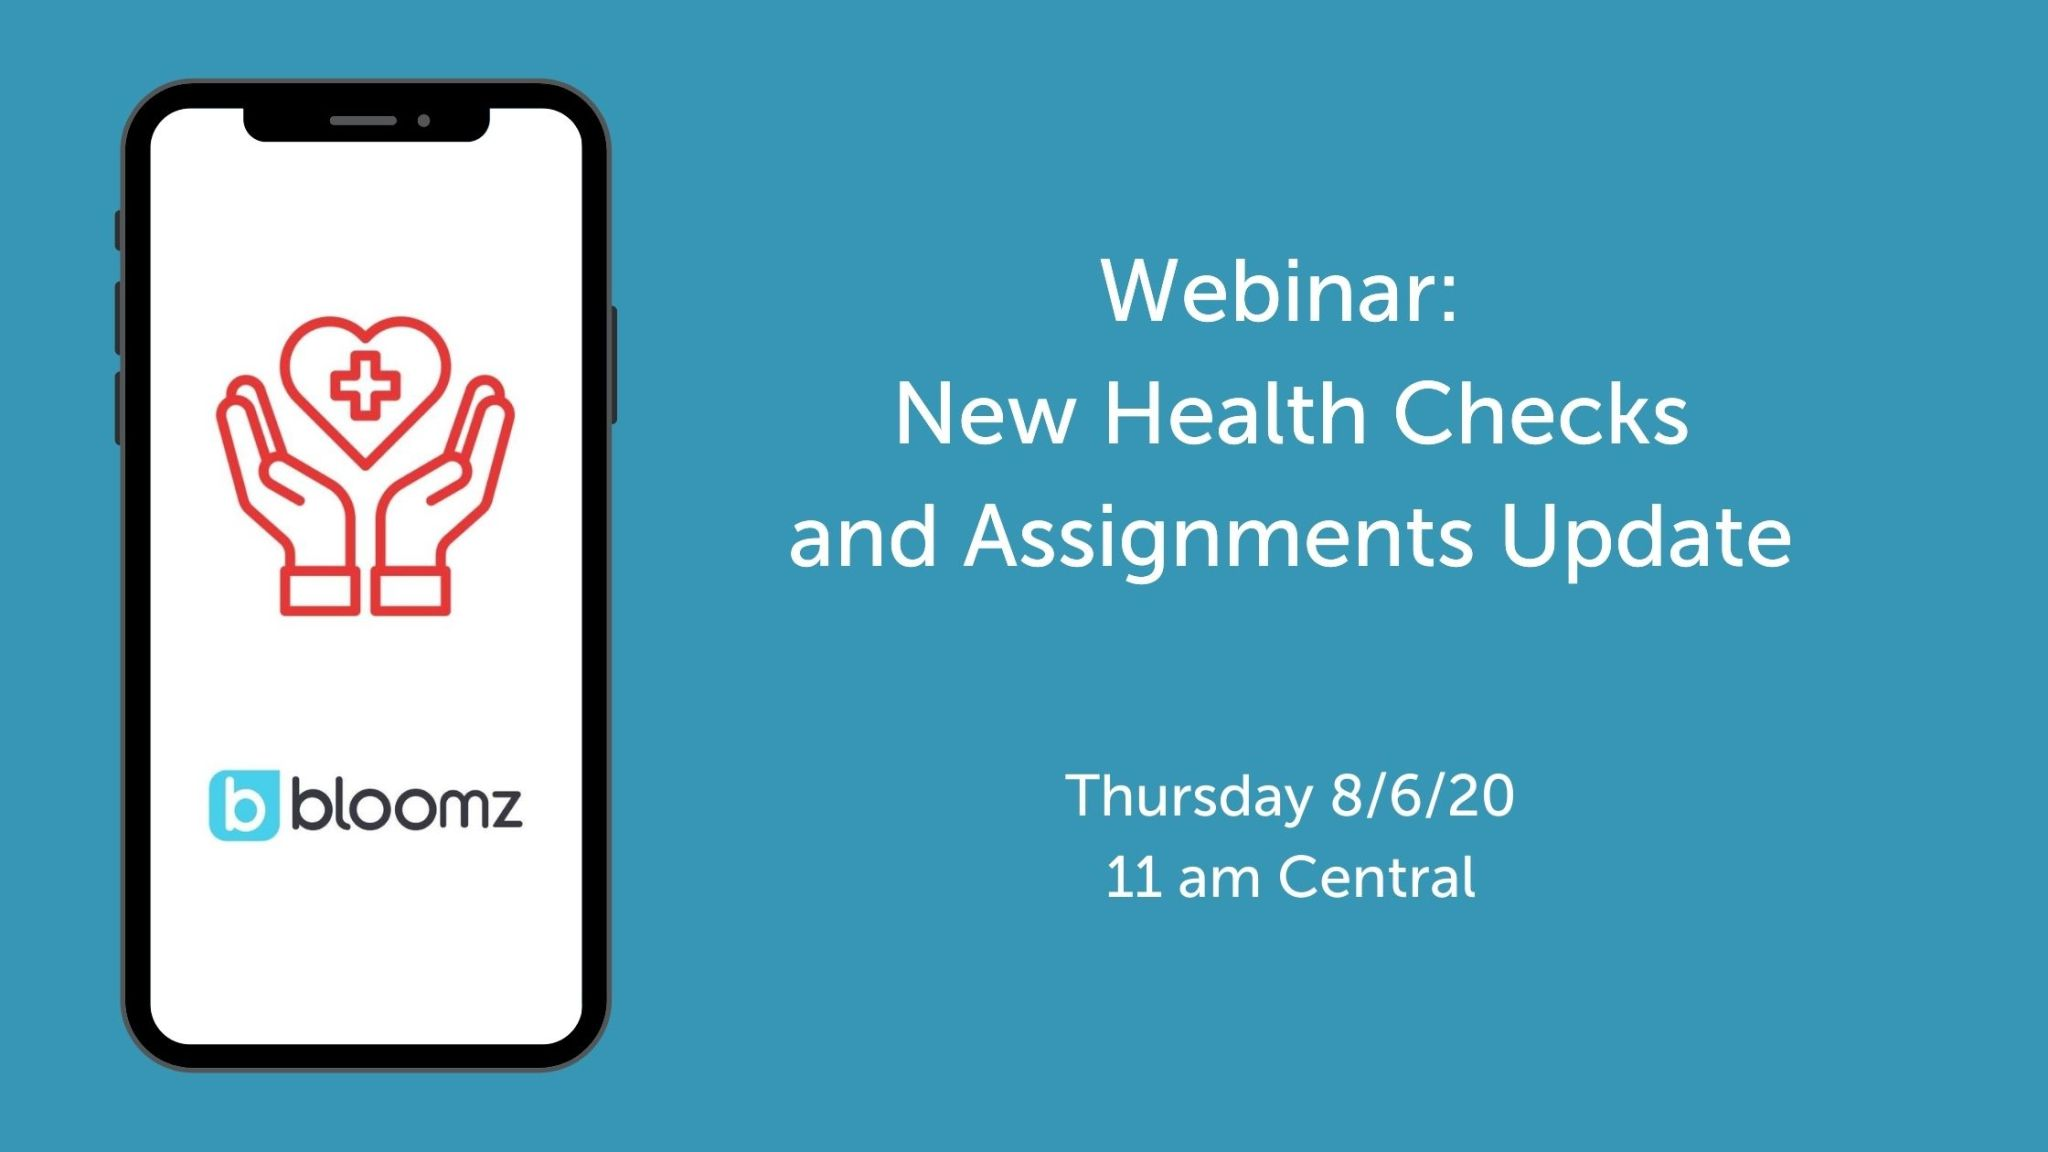 Webinar: New Health Checks and Assignments Update